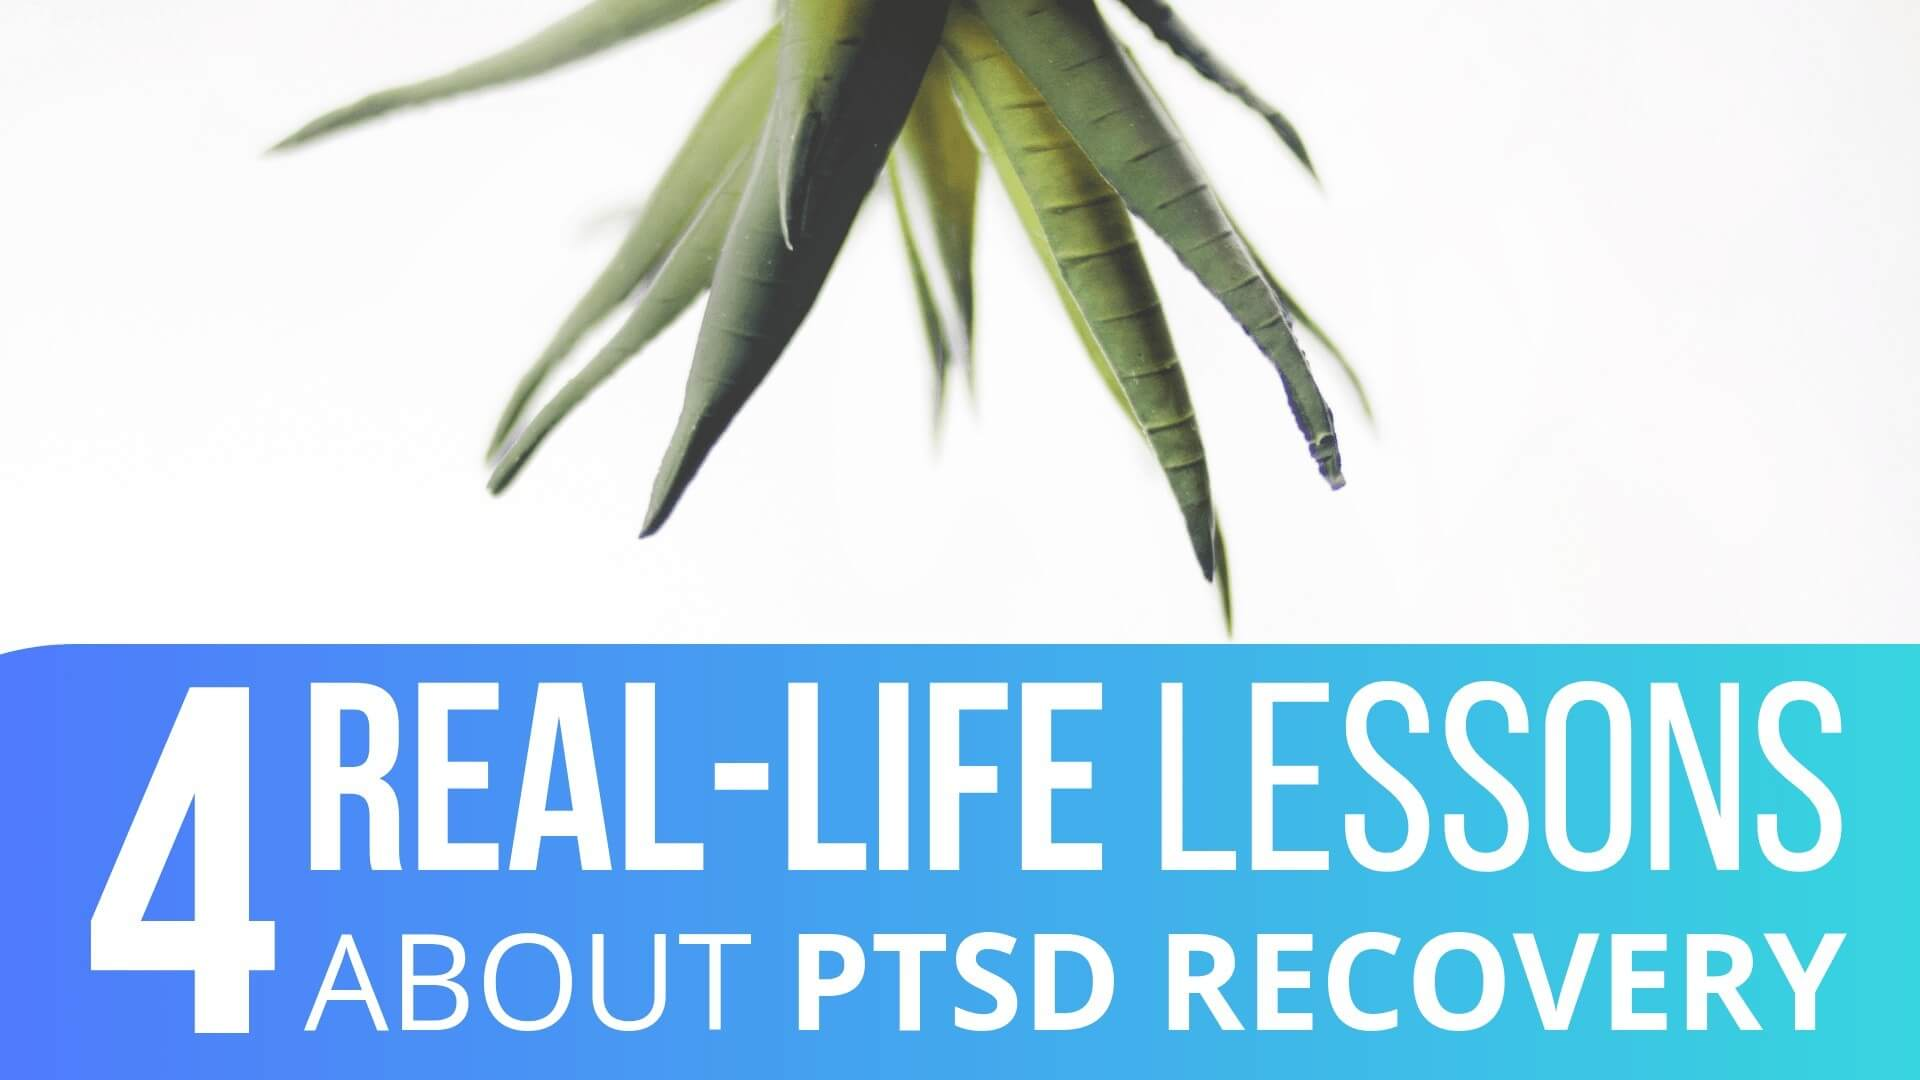 4 Real-Life Lessons About PTSD Recovery